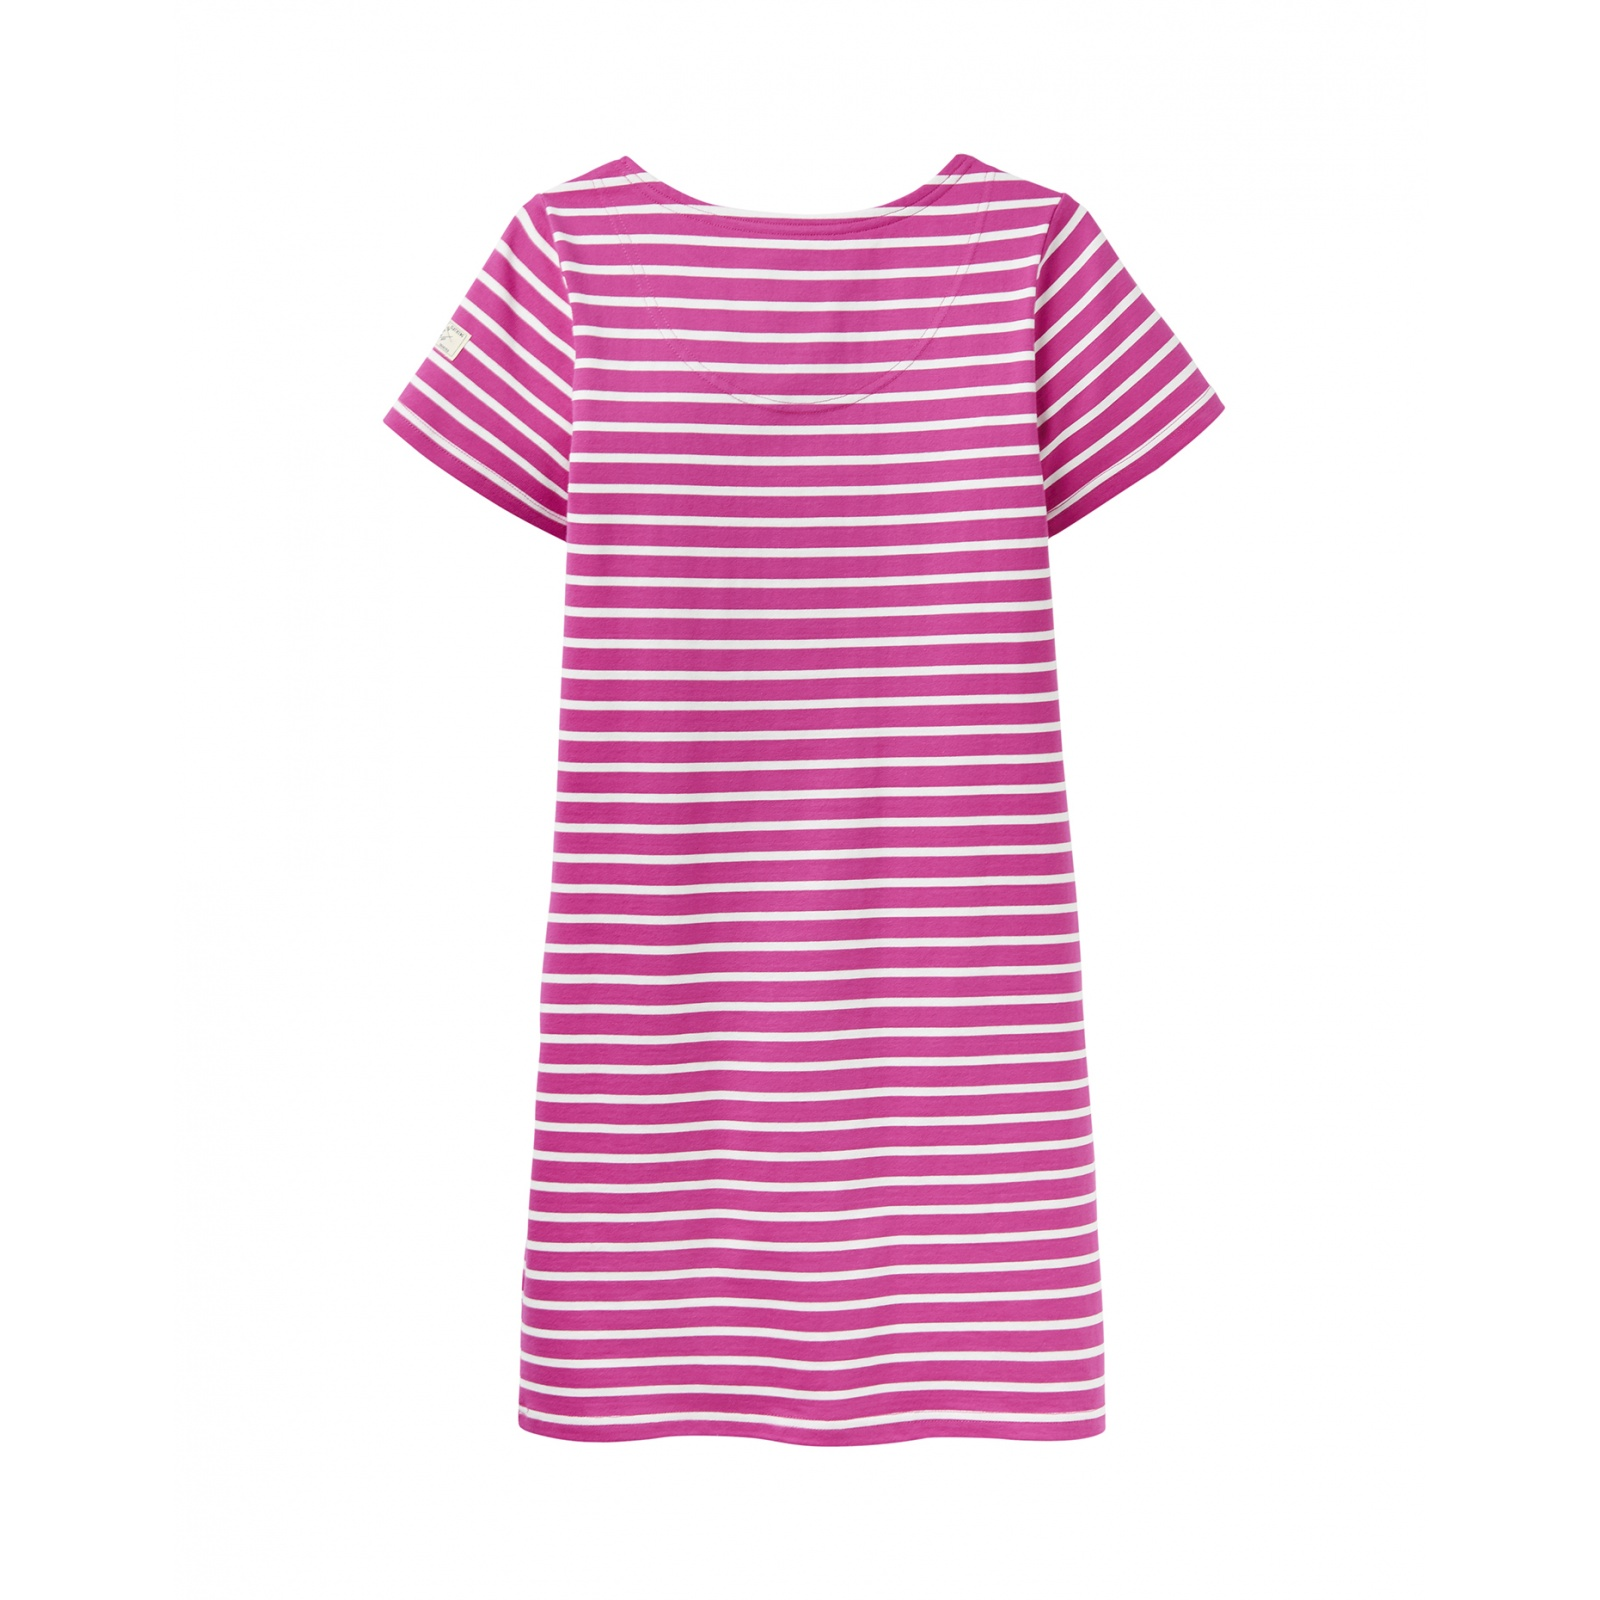 Joules-Riviera-T-Shirt-Dress-with-Short-Sleeves-SS19 miniature 28